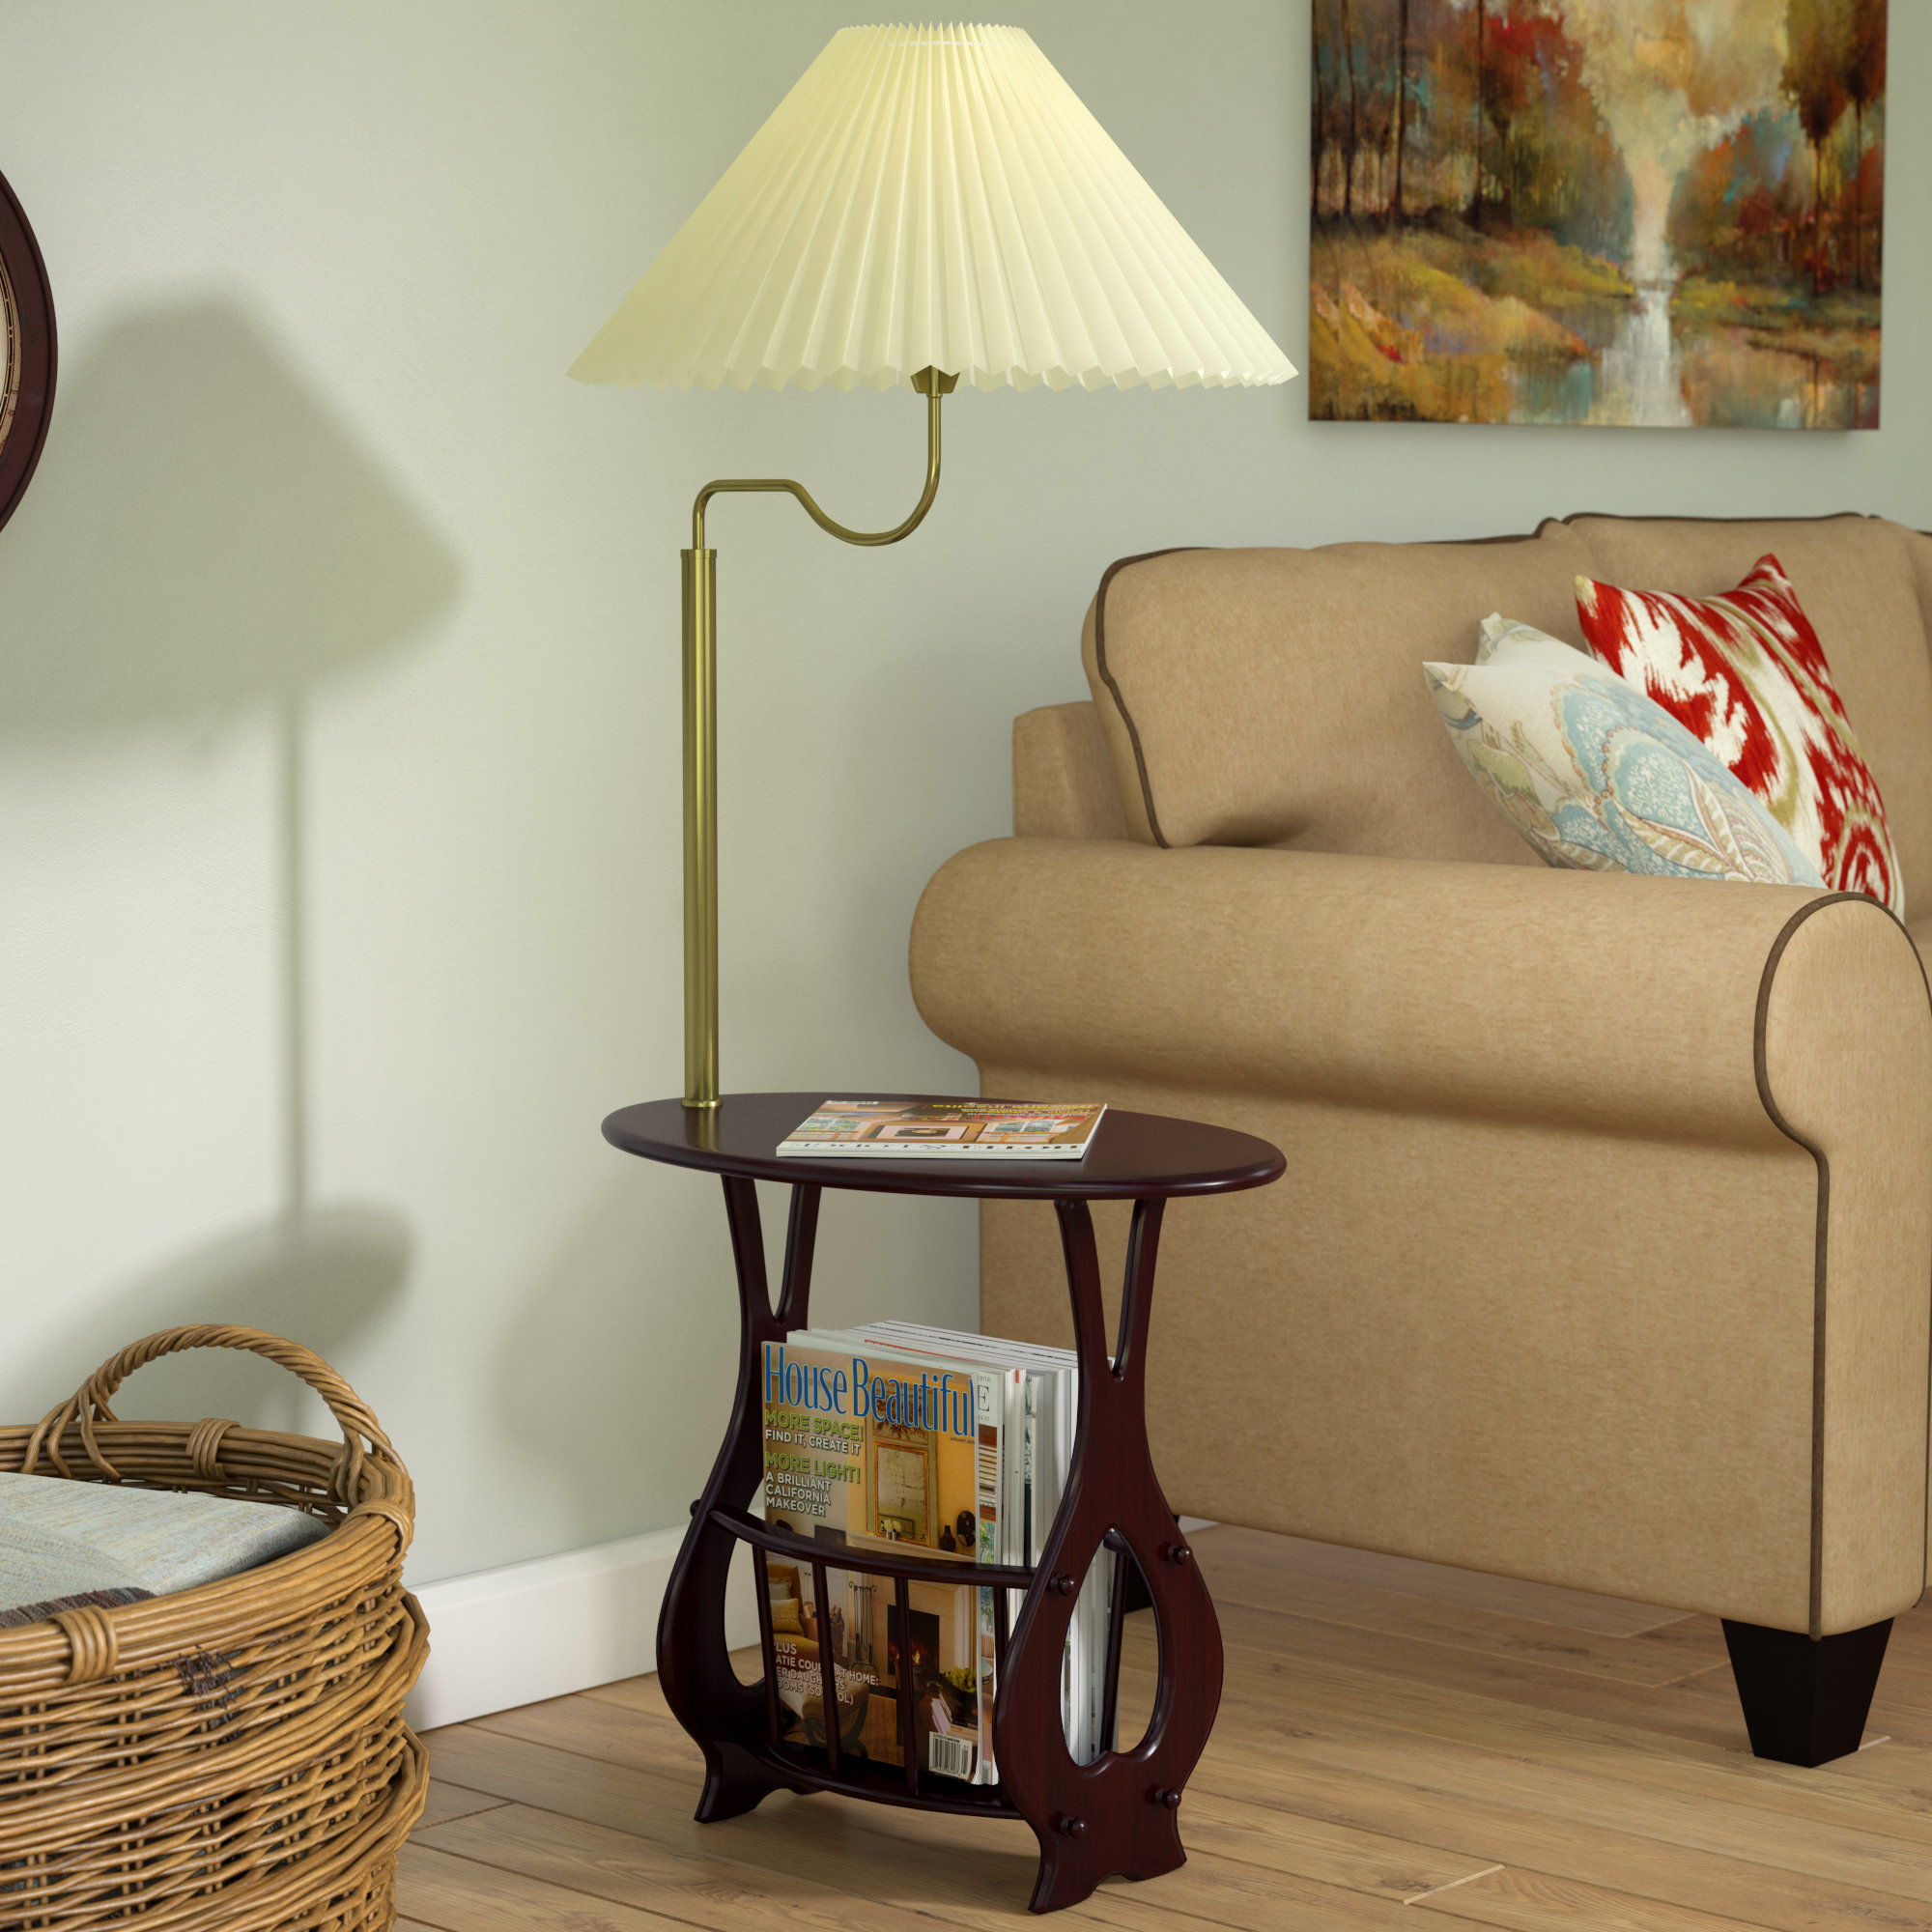 darby home portersville floor lamp end table magazine rack combination combinations reviews dark brown leather couch order laura ashley catalogue thomasville furniture chairs